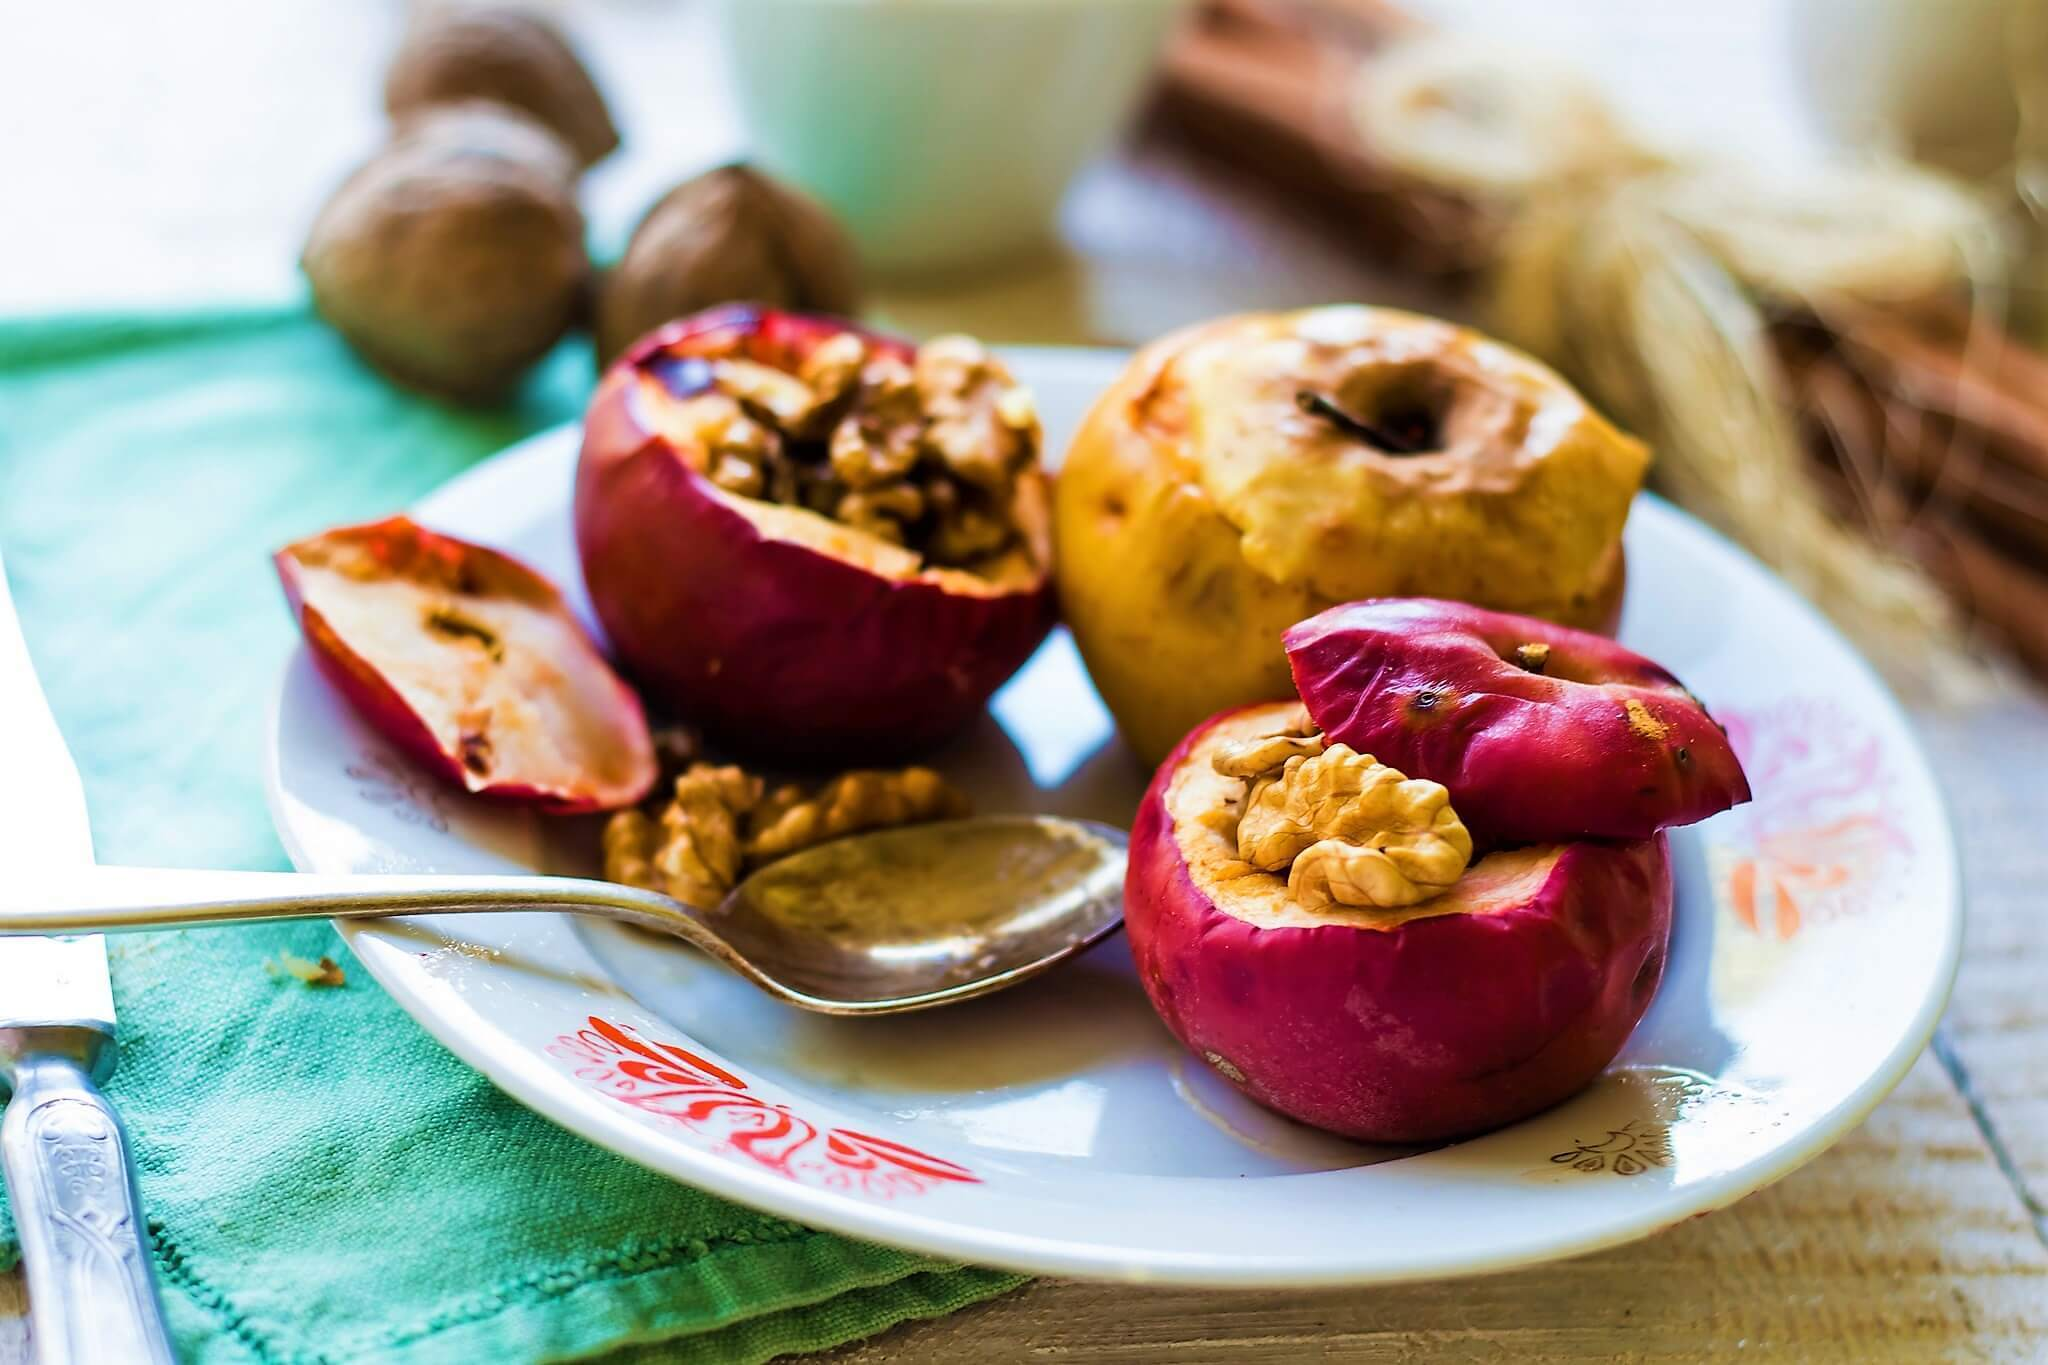 BAKED APPLES WITH HONEY,WALNUTS AND CINNAMON